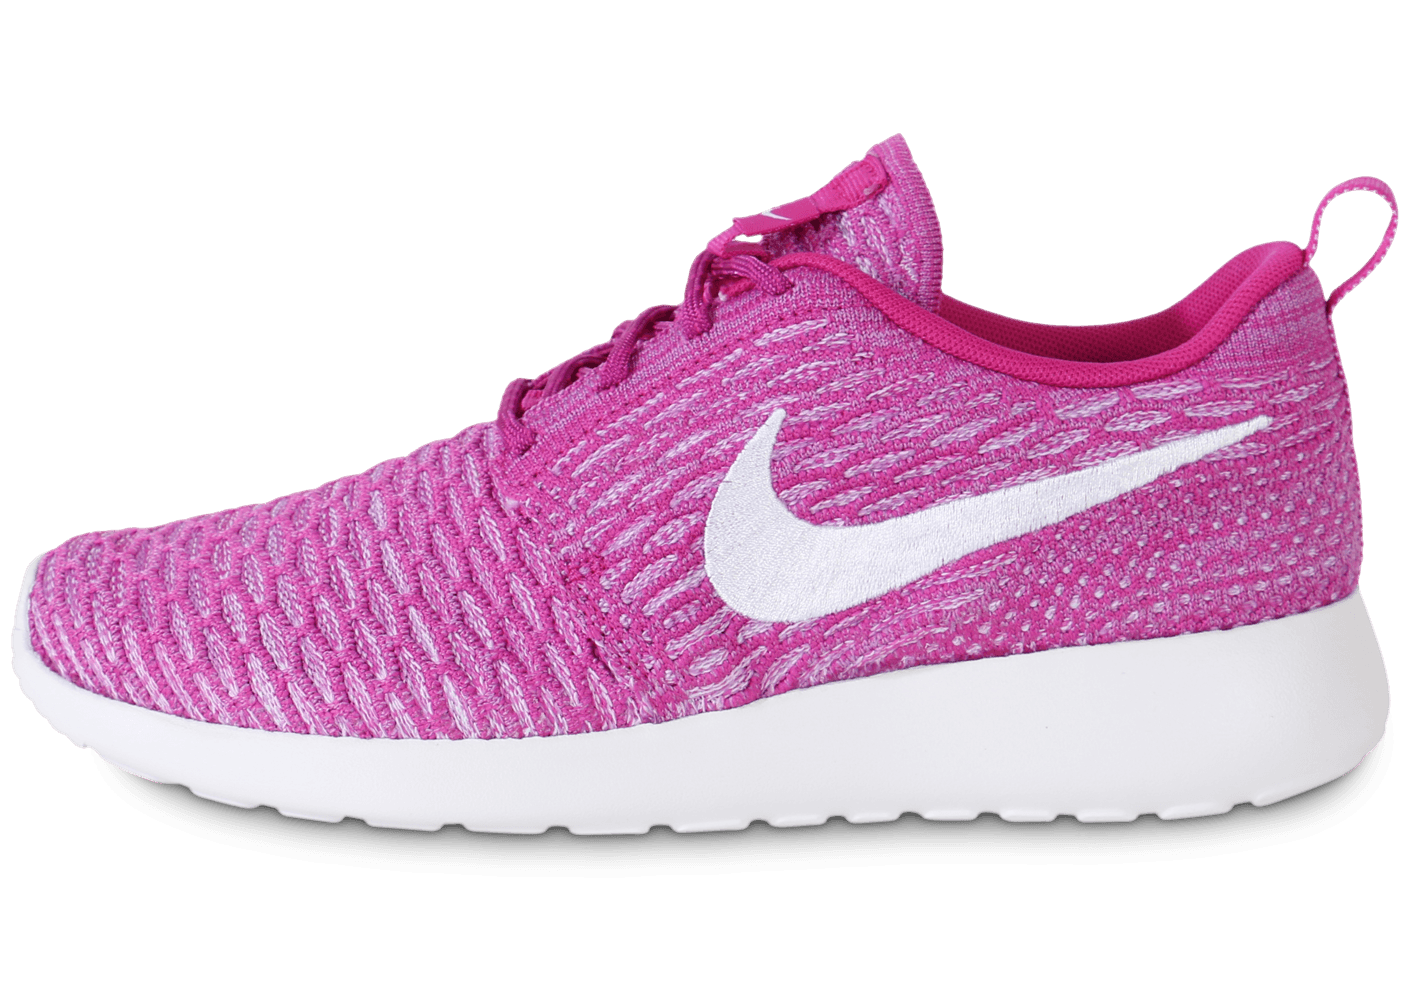 nike roshe run flyknit fushia chaussures toutes les baskets sold es chausport. Black Bedroom Furniture Sets. Home Design Ideas